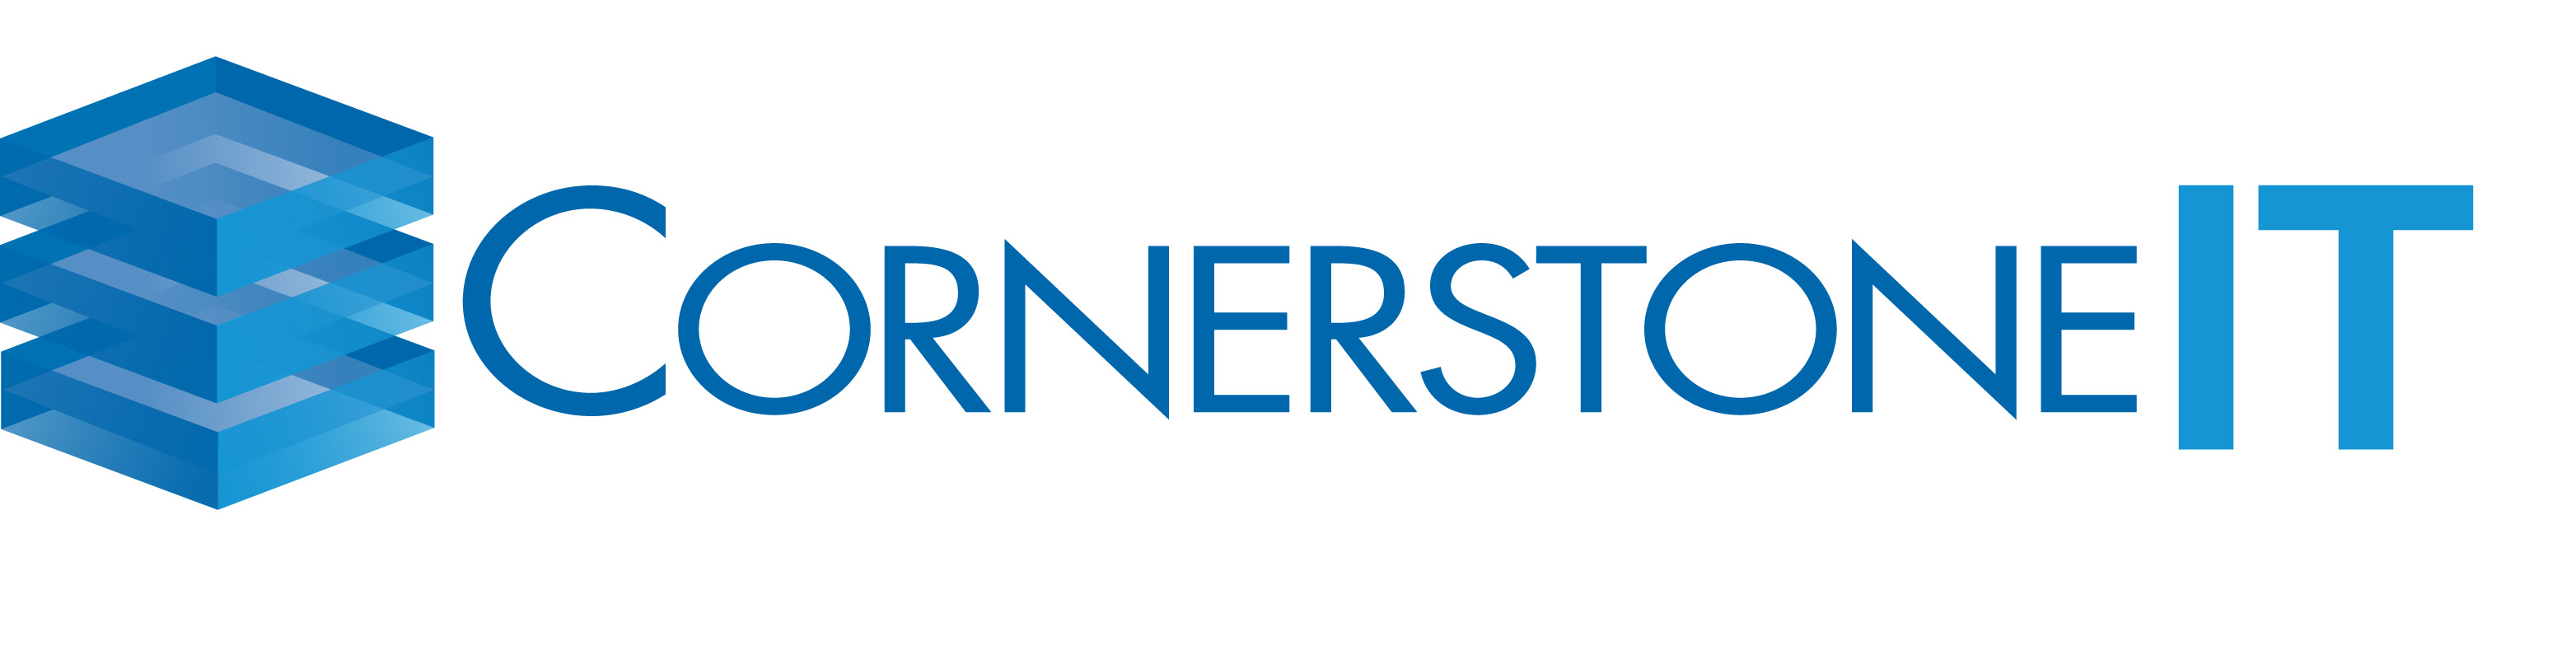 Cornerstone IT logo